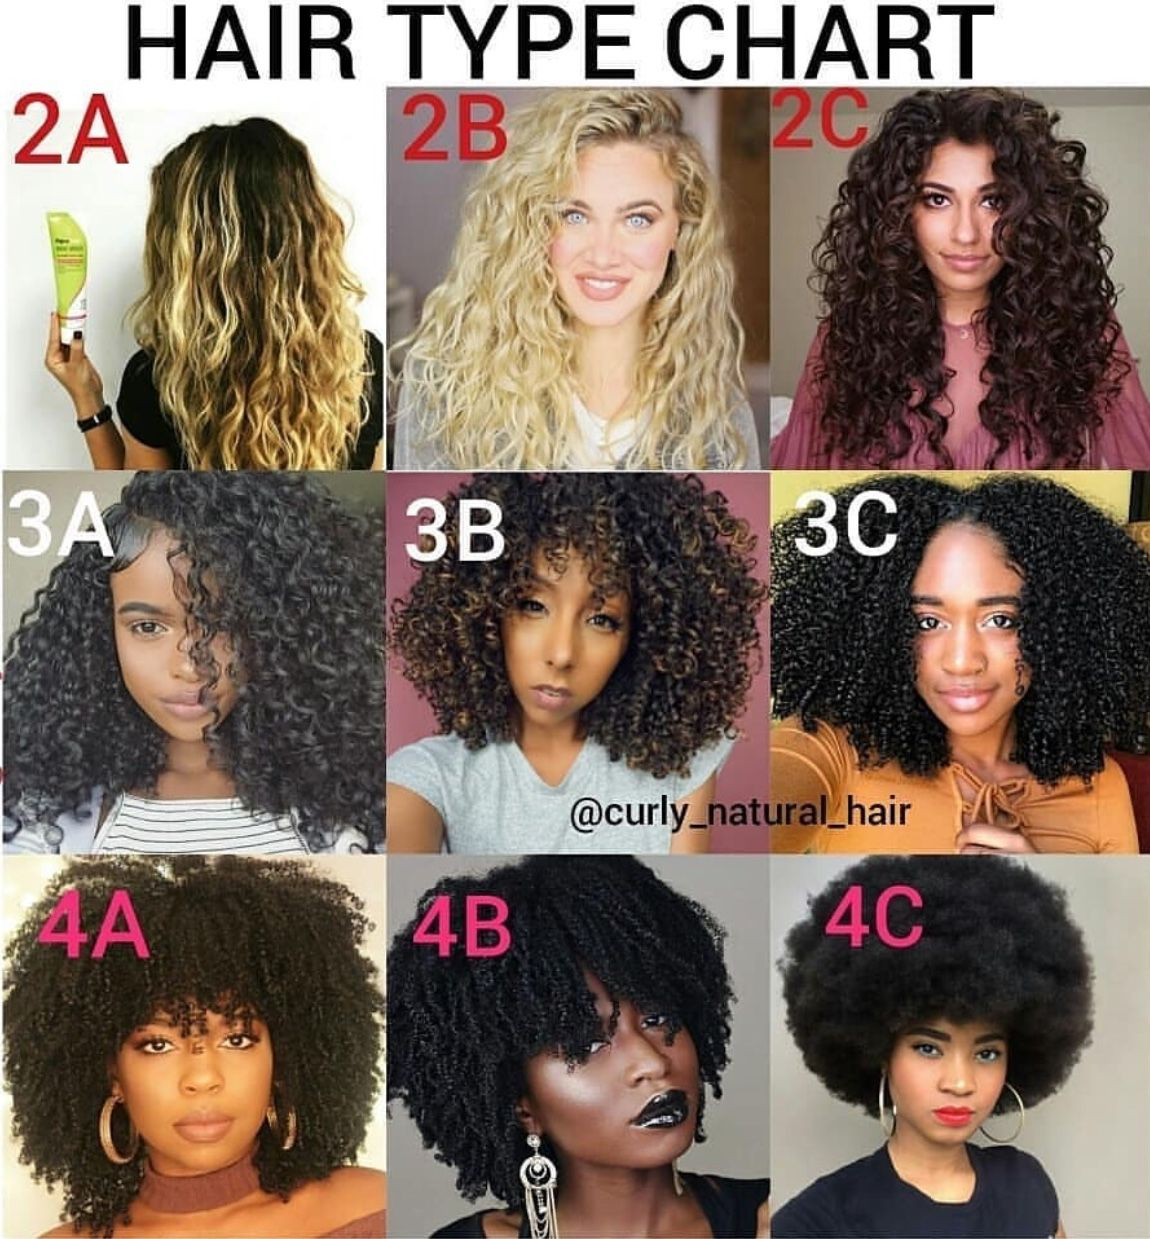 Pin by BeyInFormation on Hair Tips in 2019 Curly hair